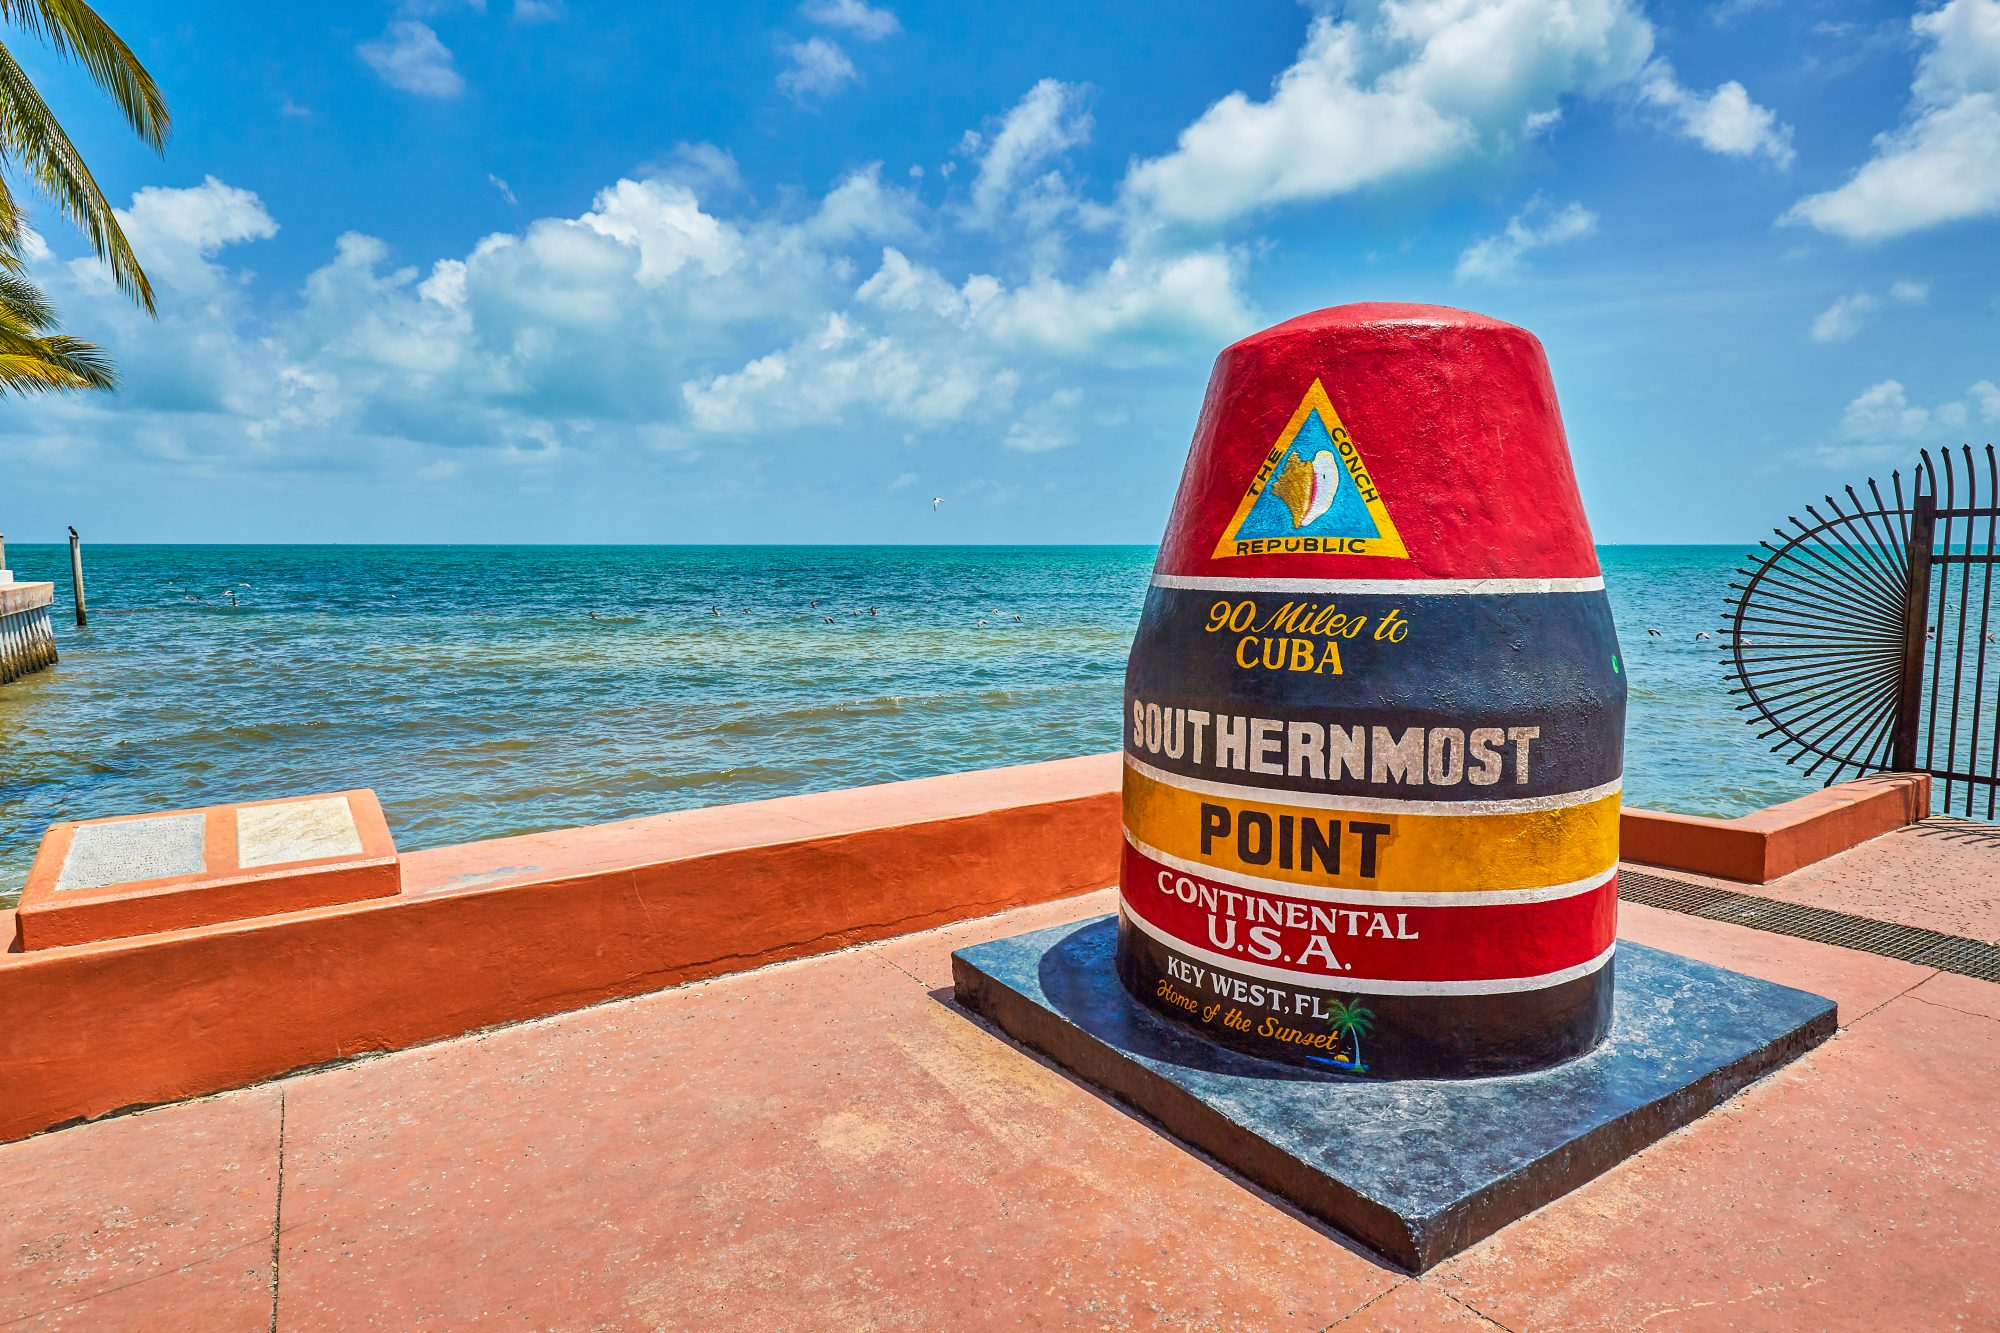 Visit the Southernmost Point